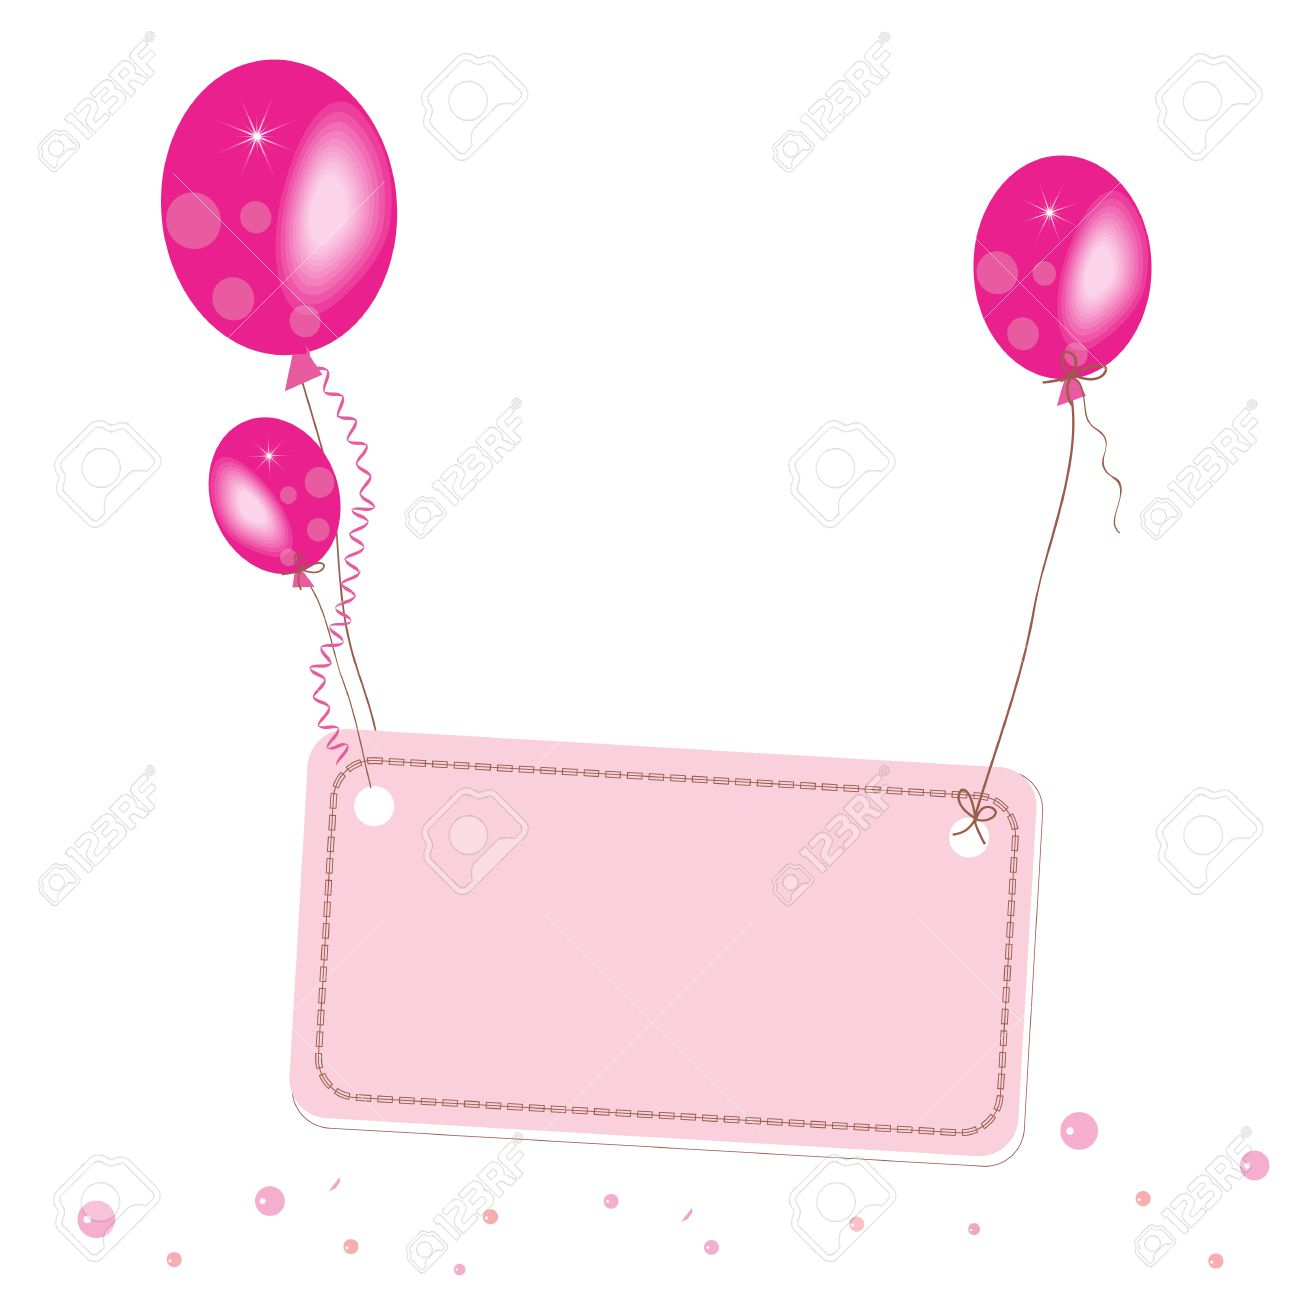 Pink Flying Balloon Place For Text Wallpaper Stock Vector